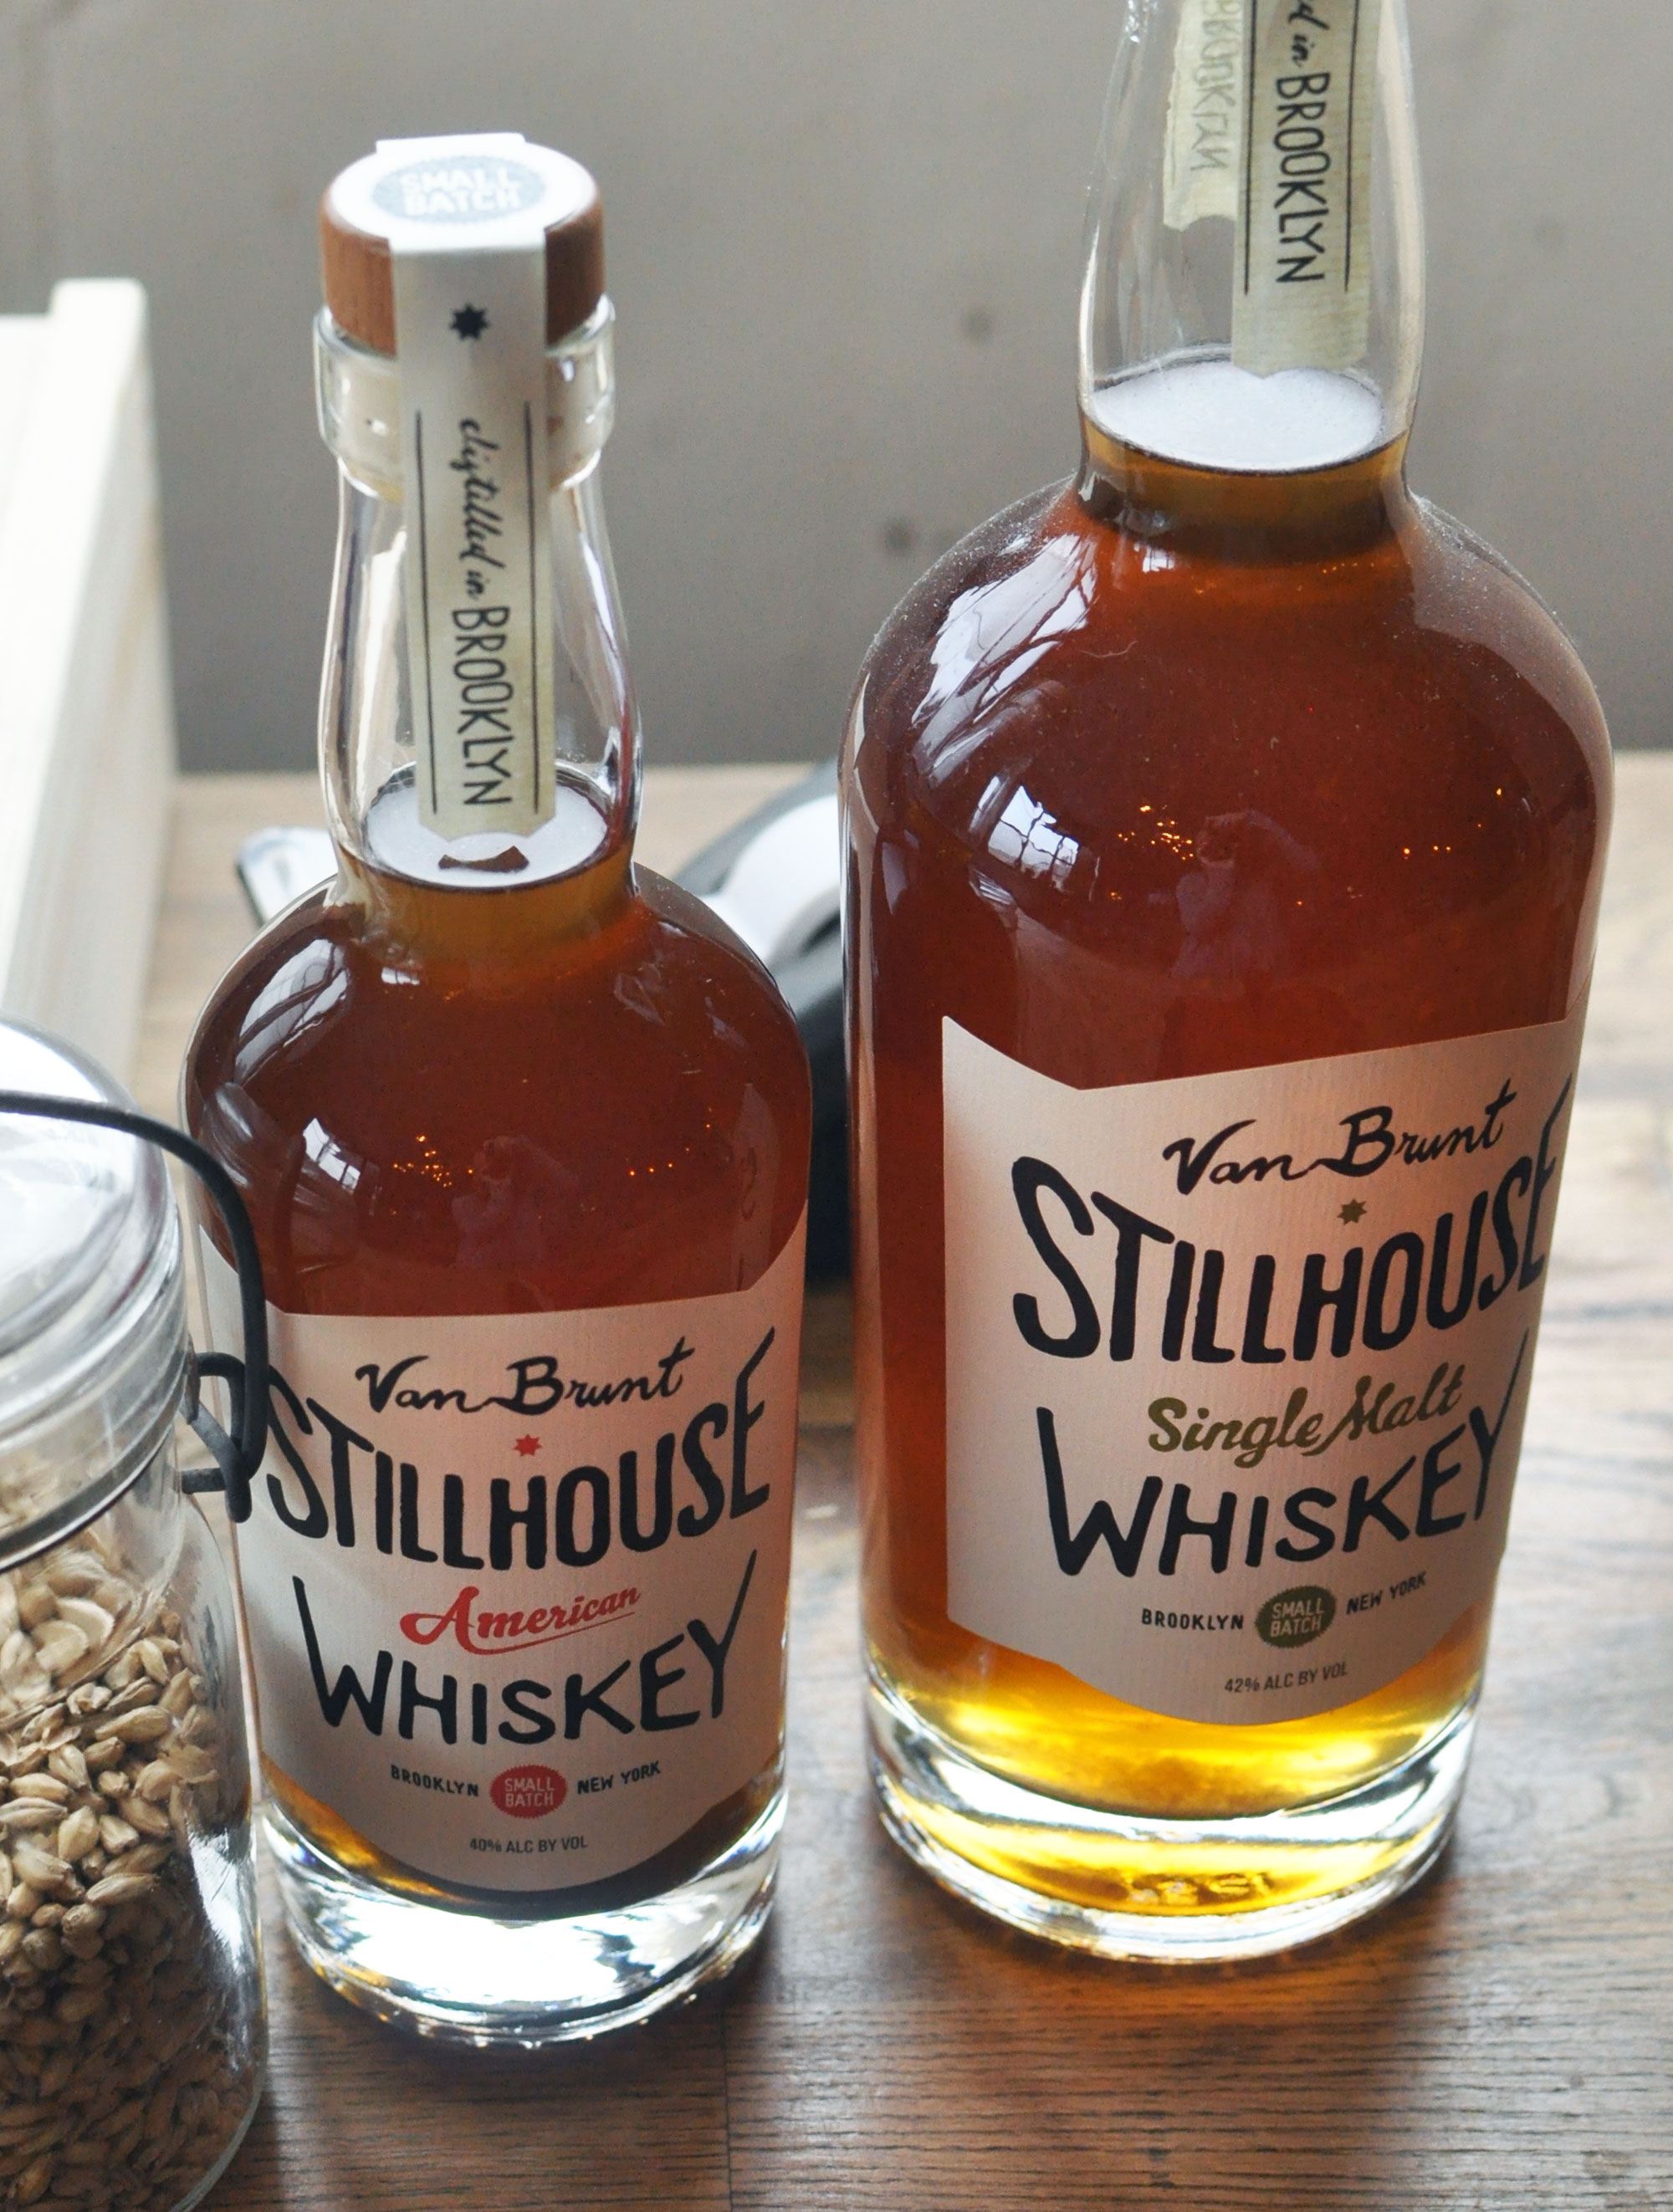 Van Brunt Stillhouse American and Single Malt Whiskies